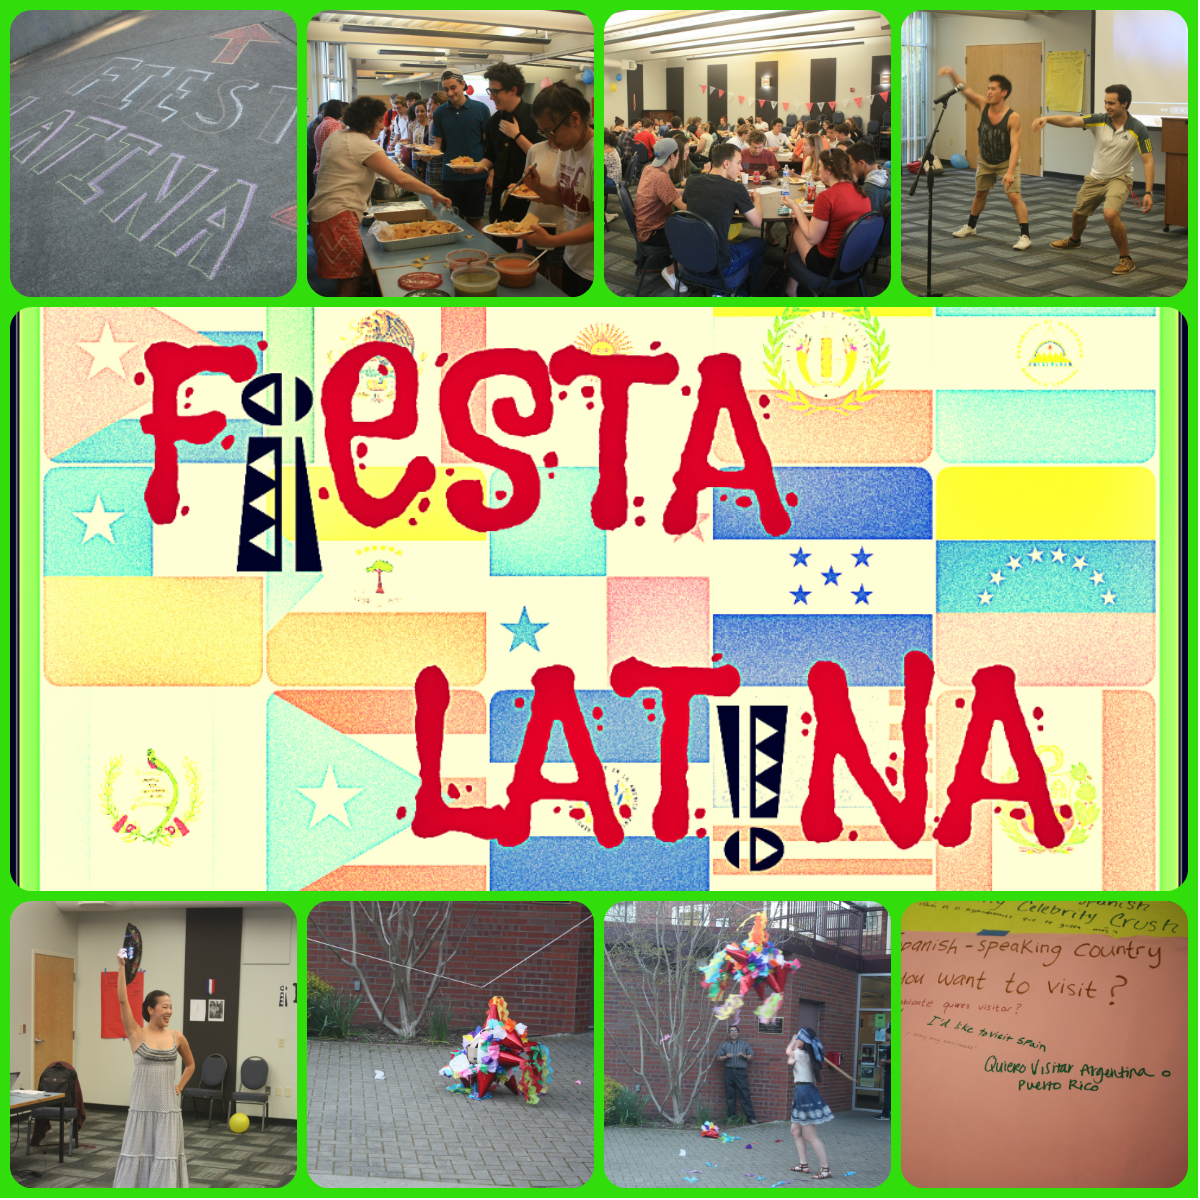 Fiesta latina post poster